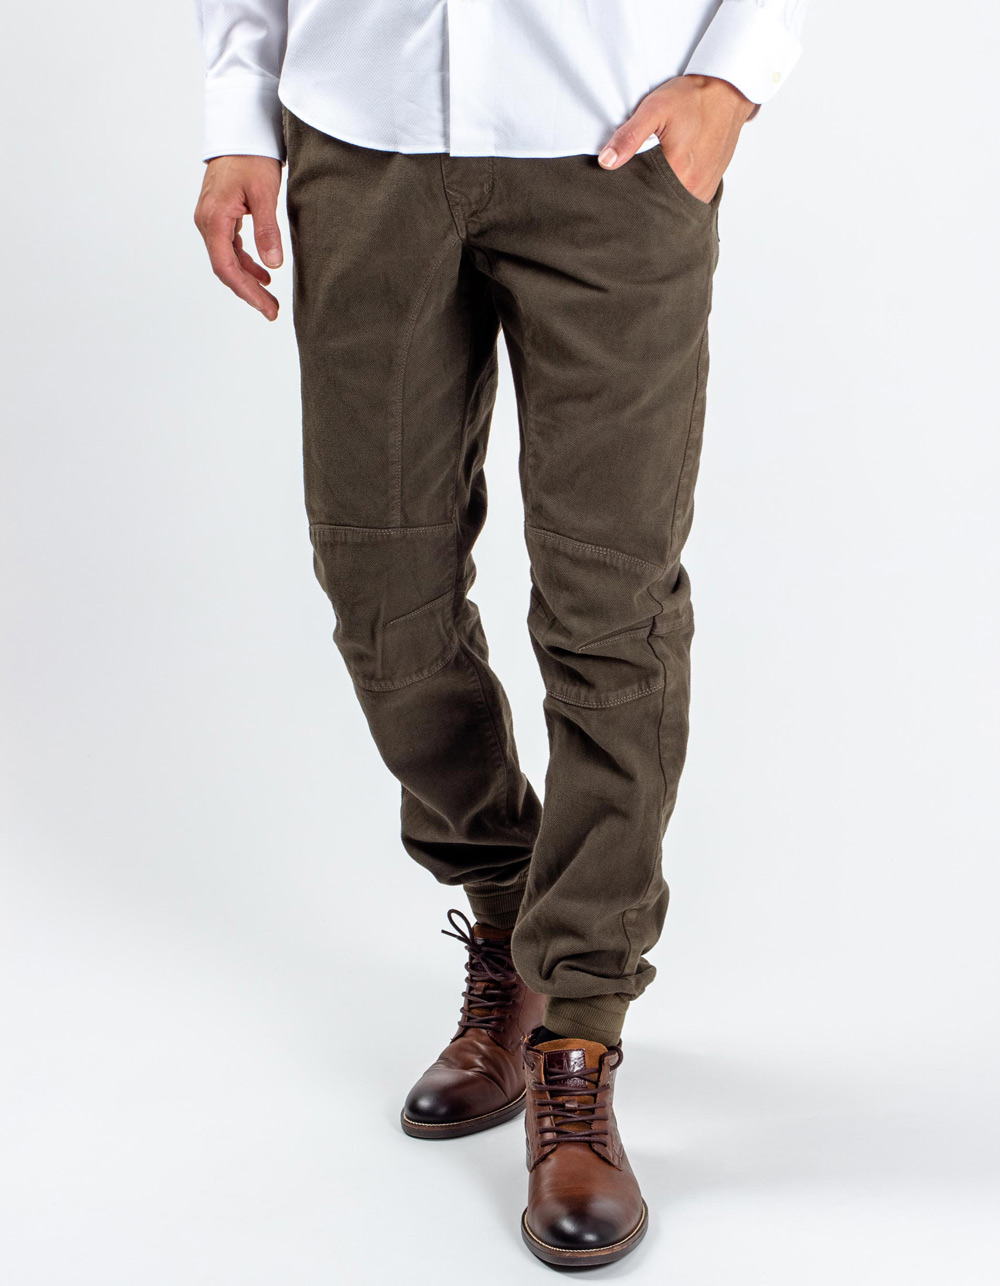 Kaki jogging trousers with micro-pattern